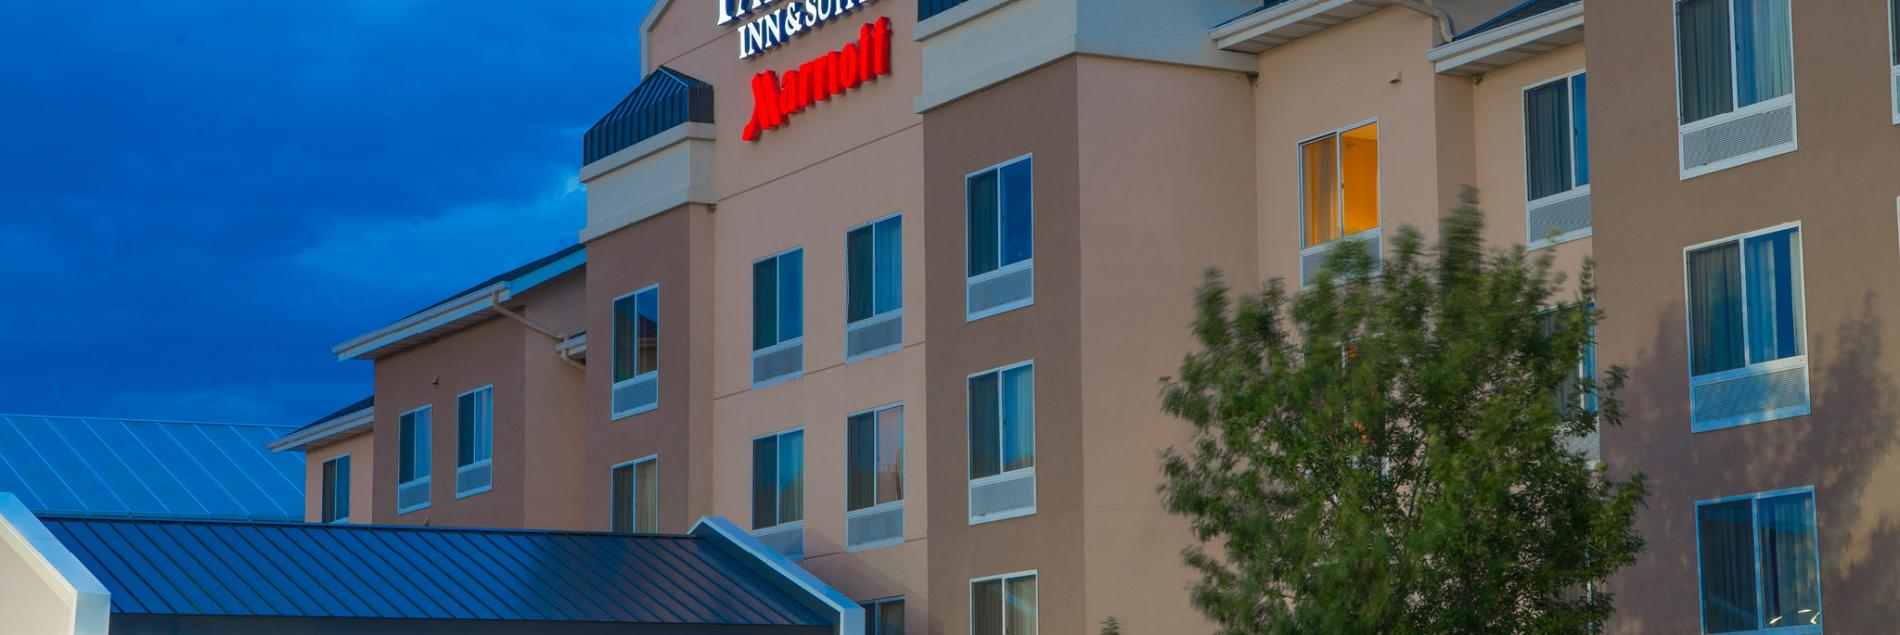 Fairfield Inn & Suites by Marriott *